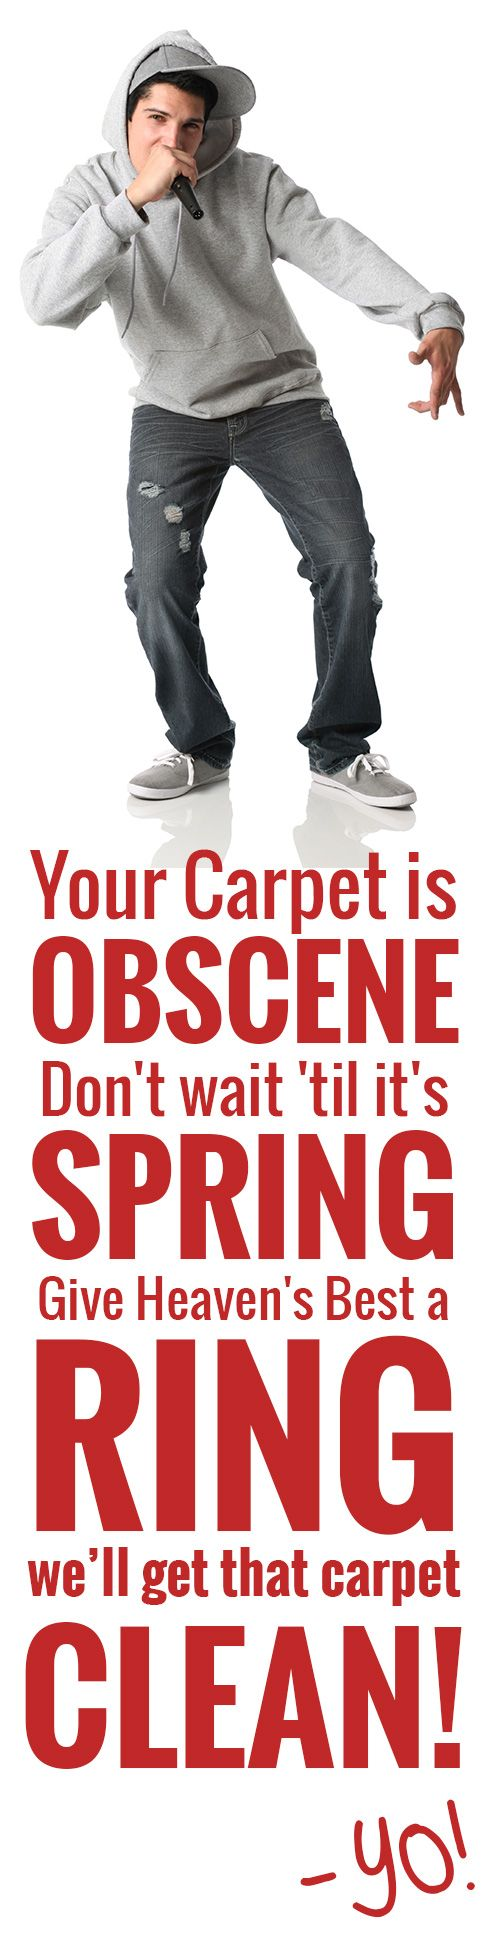 Call the experts at Heaven's Best to clean those carpet and floors. 406-837-5550